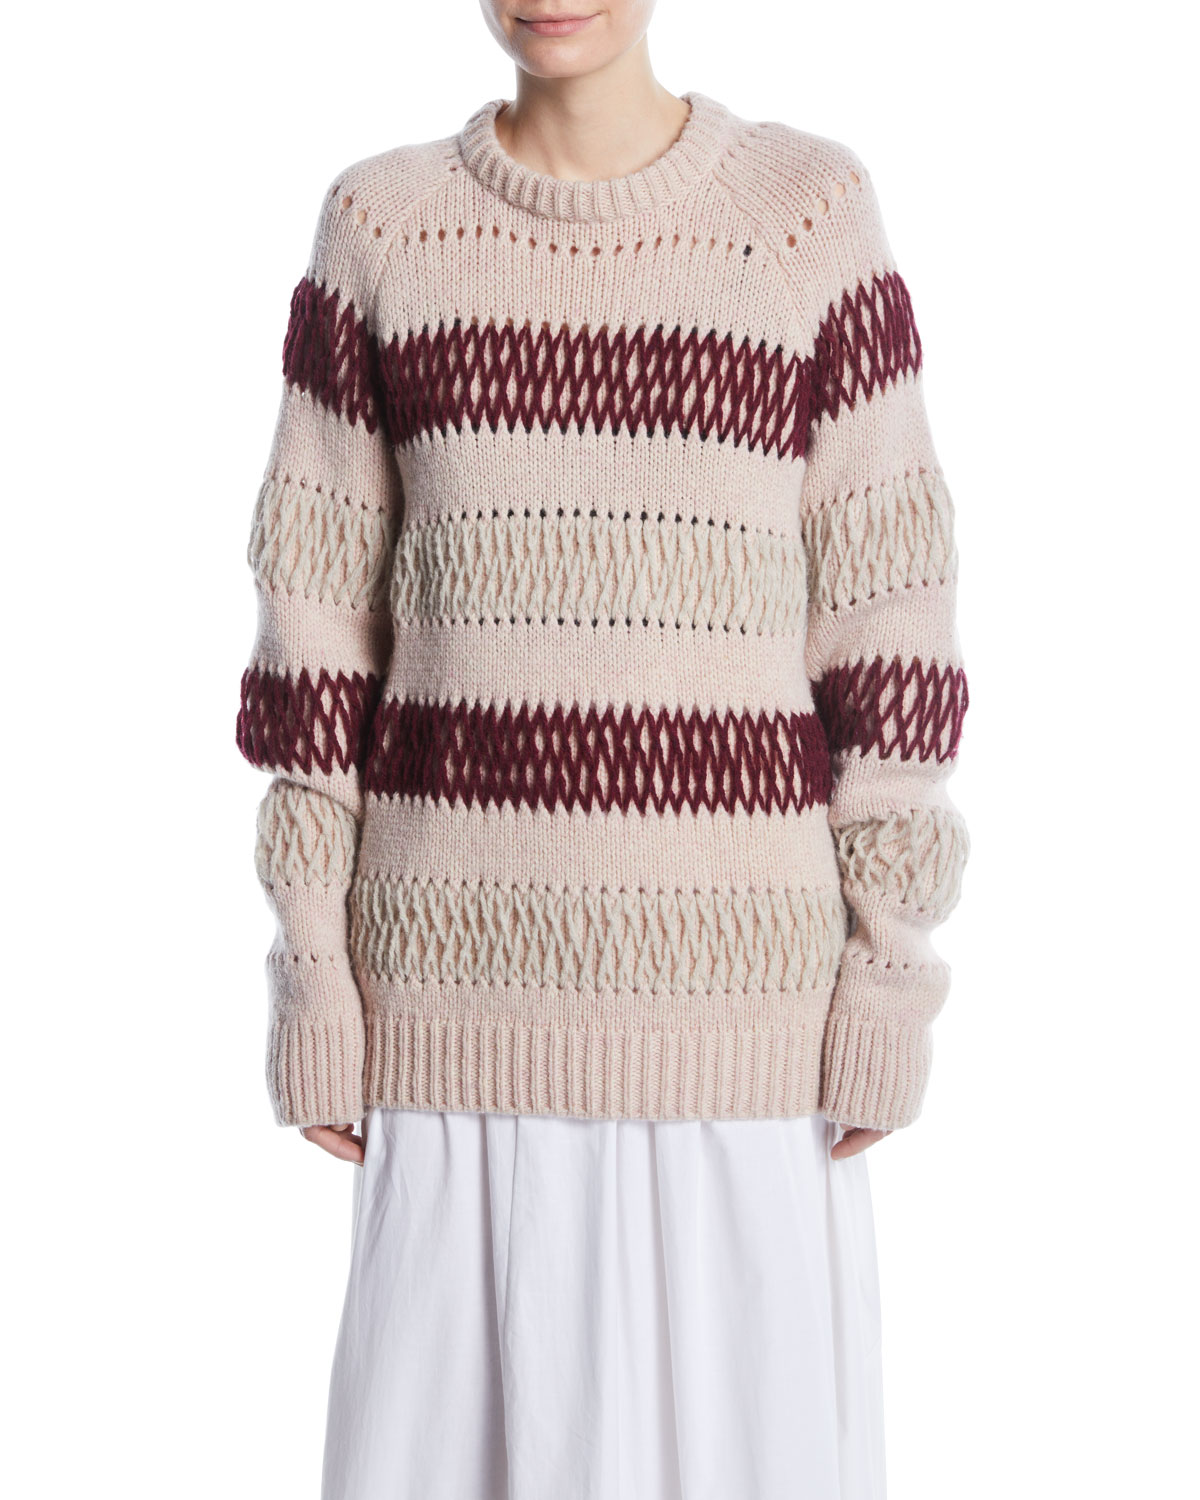 eabe3d3365e739 CALVIN KLEIN 205W39NYCCrewneck Floating-Knit Cross Stitch Wool Sweater